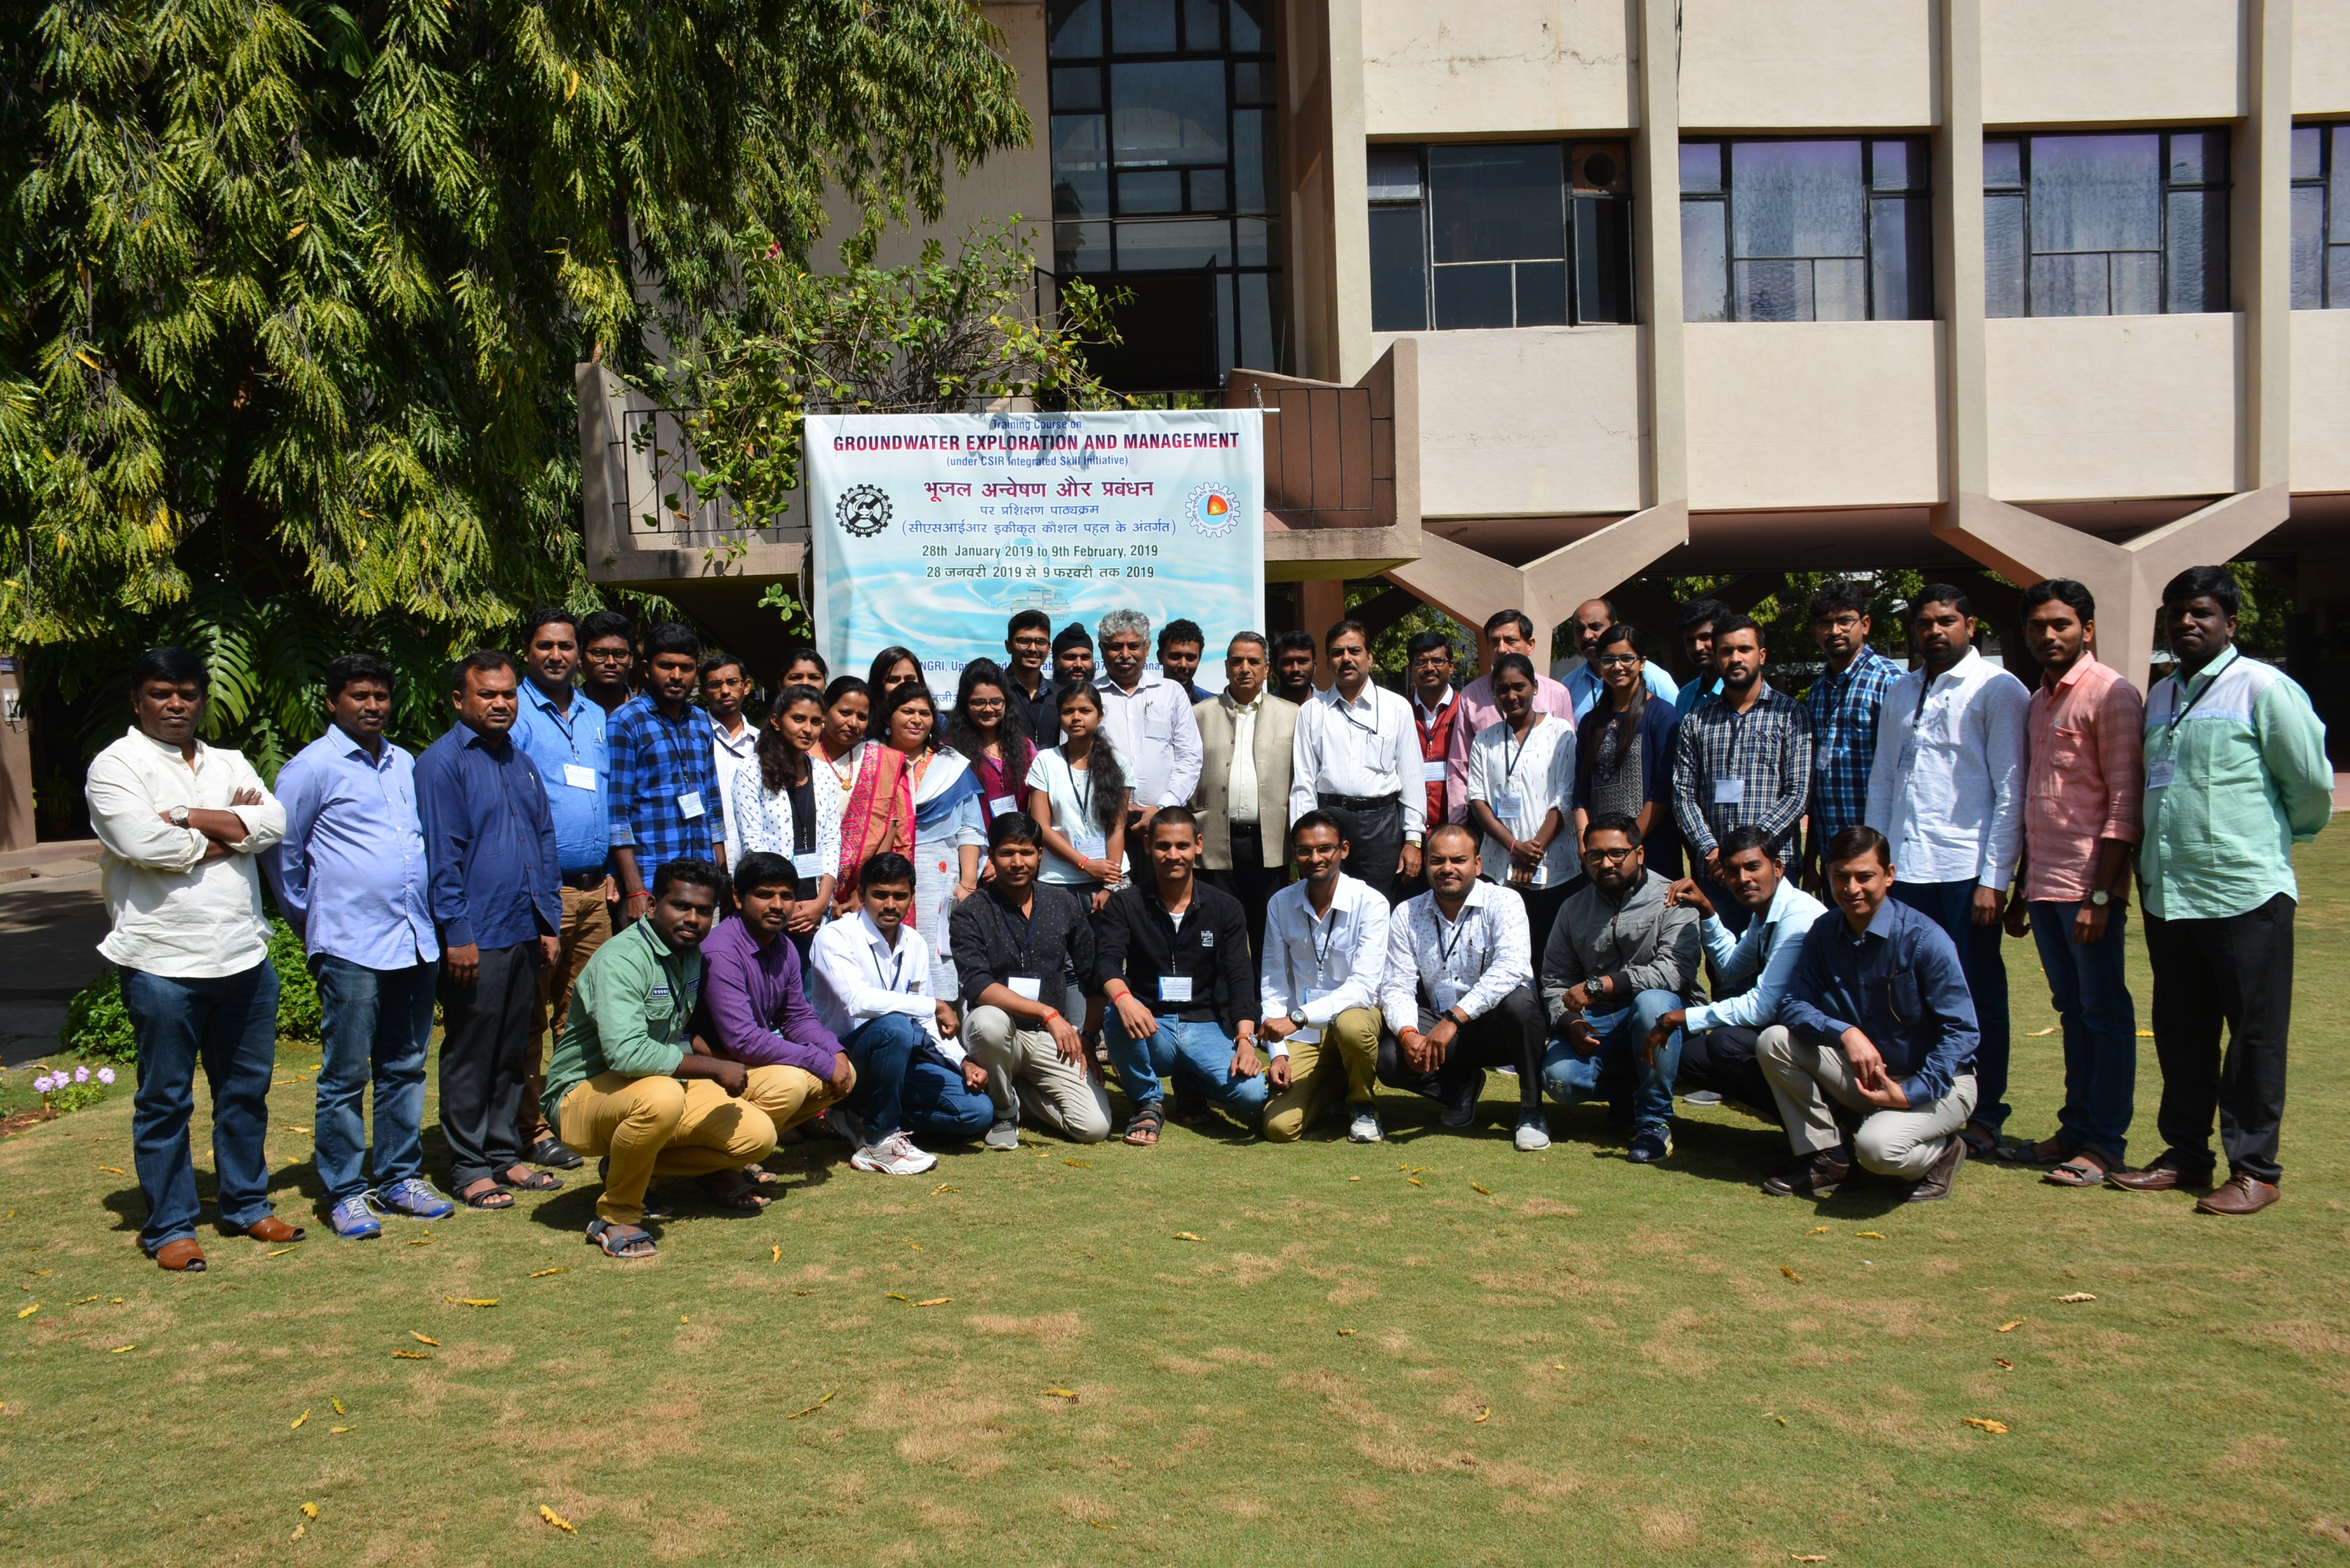 Groundwater Training Program January 2019